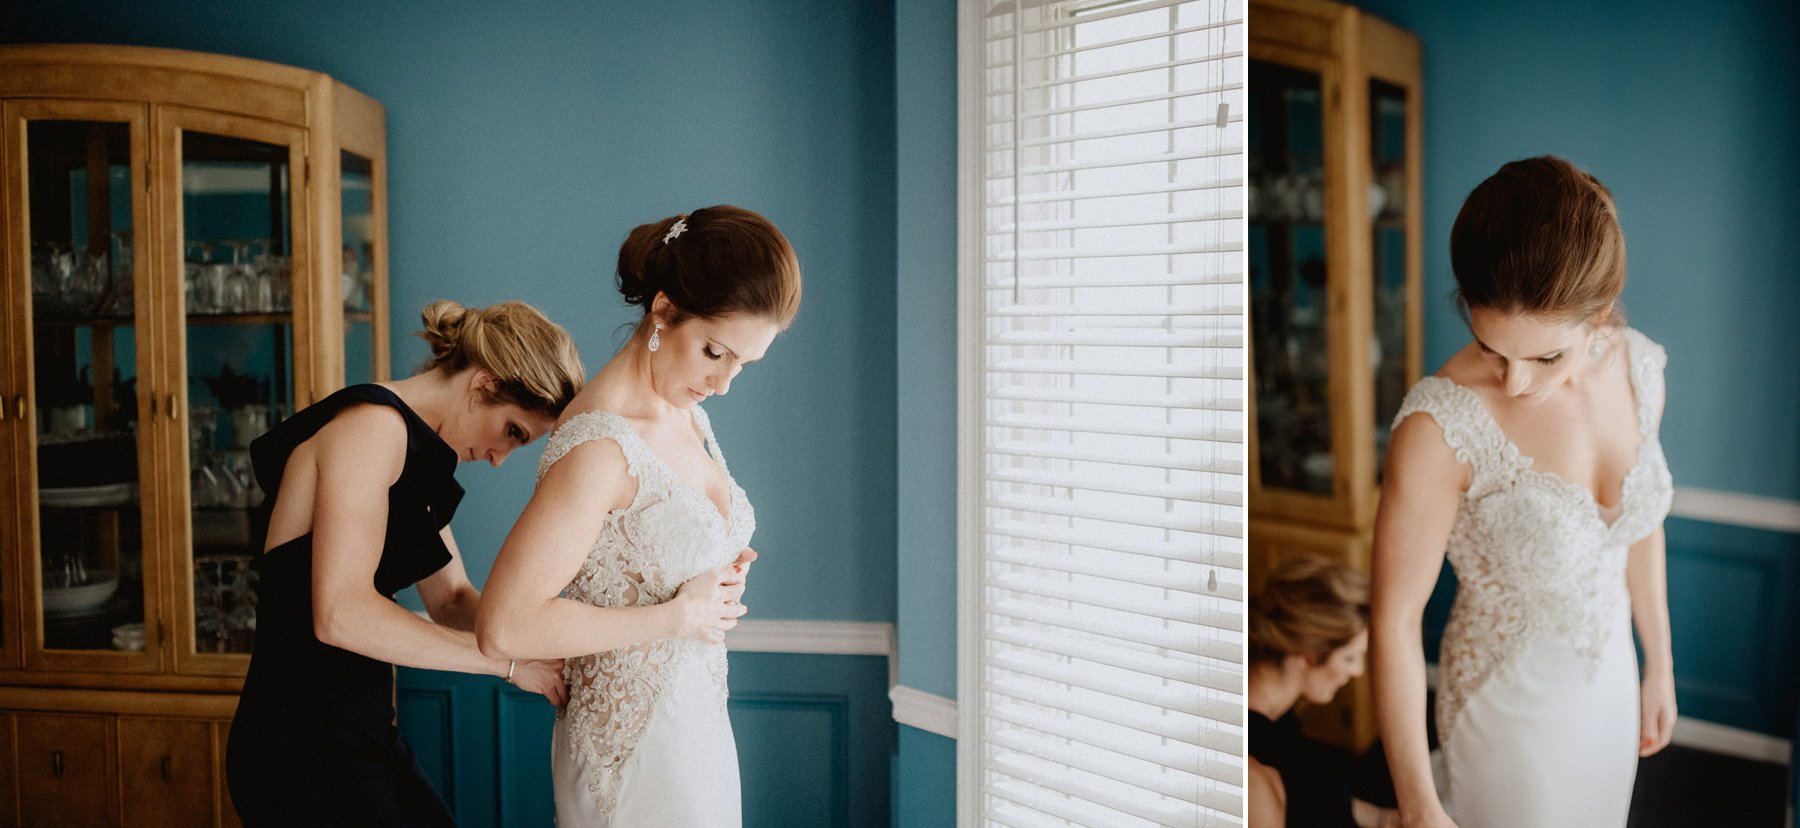 hamilton_manor_wedding-11.jpg